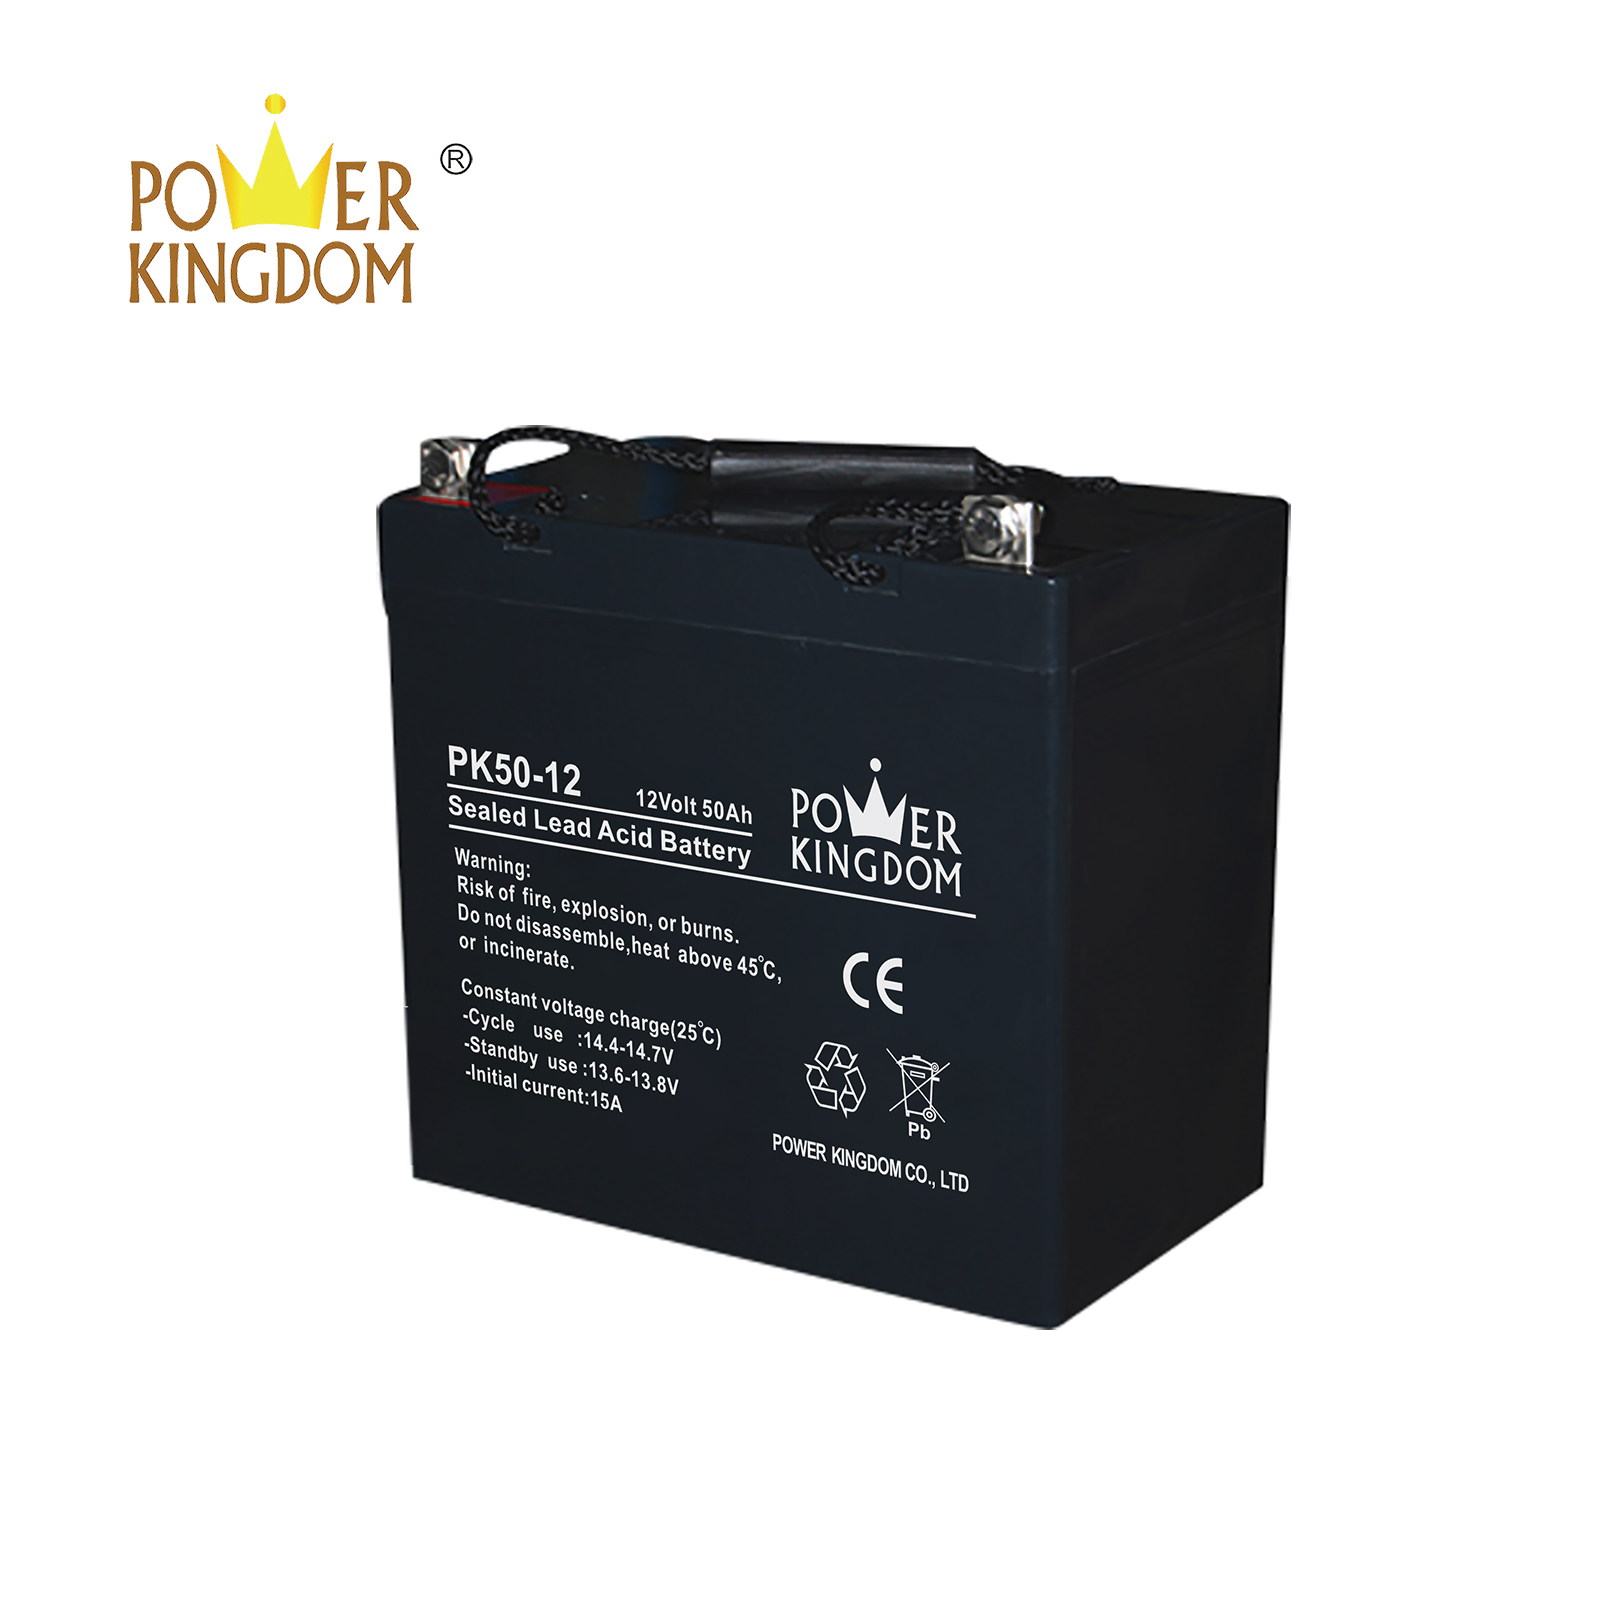 Power Kingdom charging gel cell deep cycle batteries Supply solar and wind power system